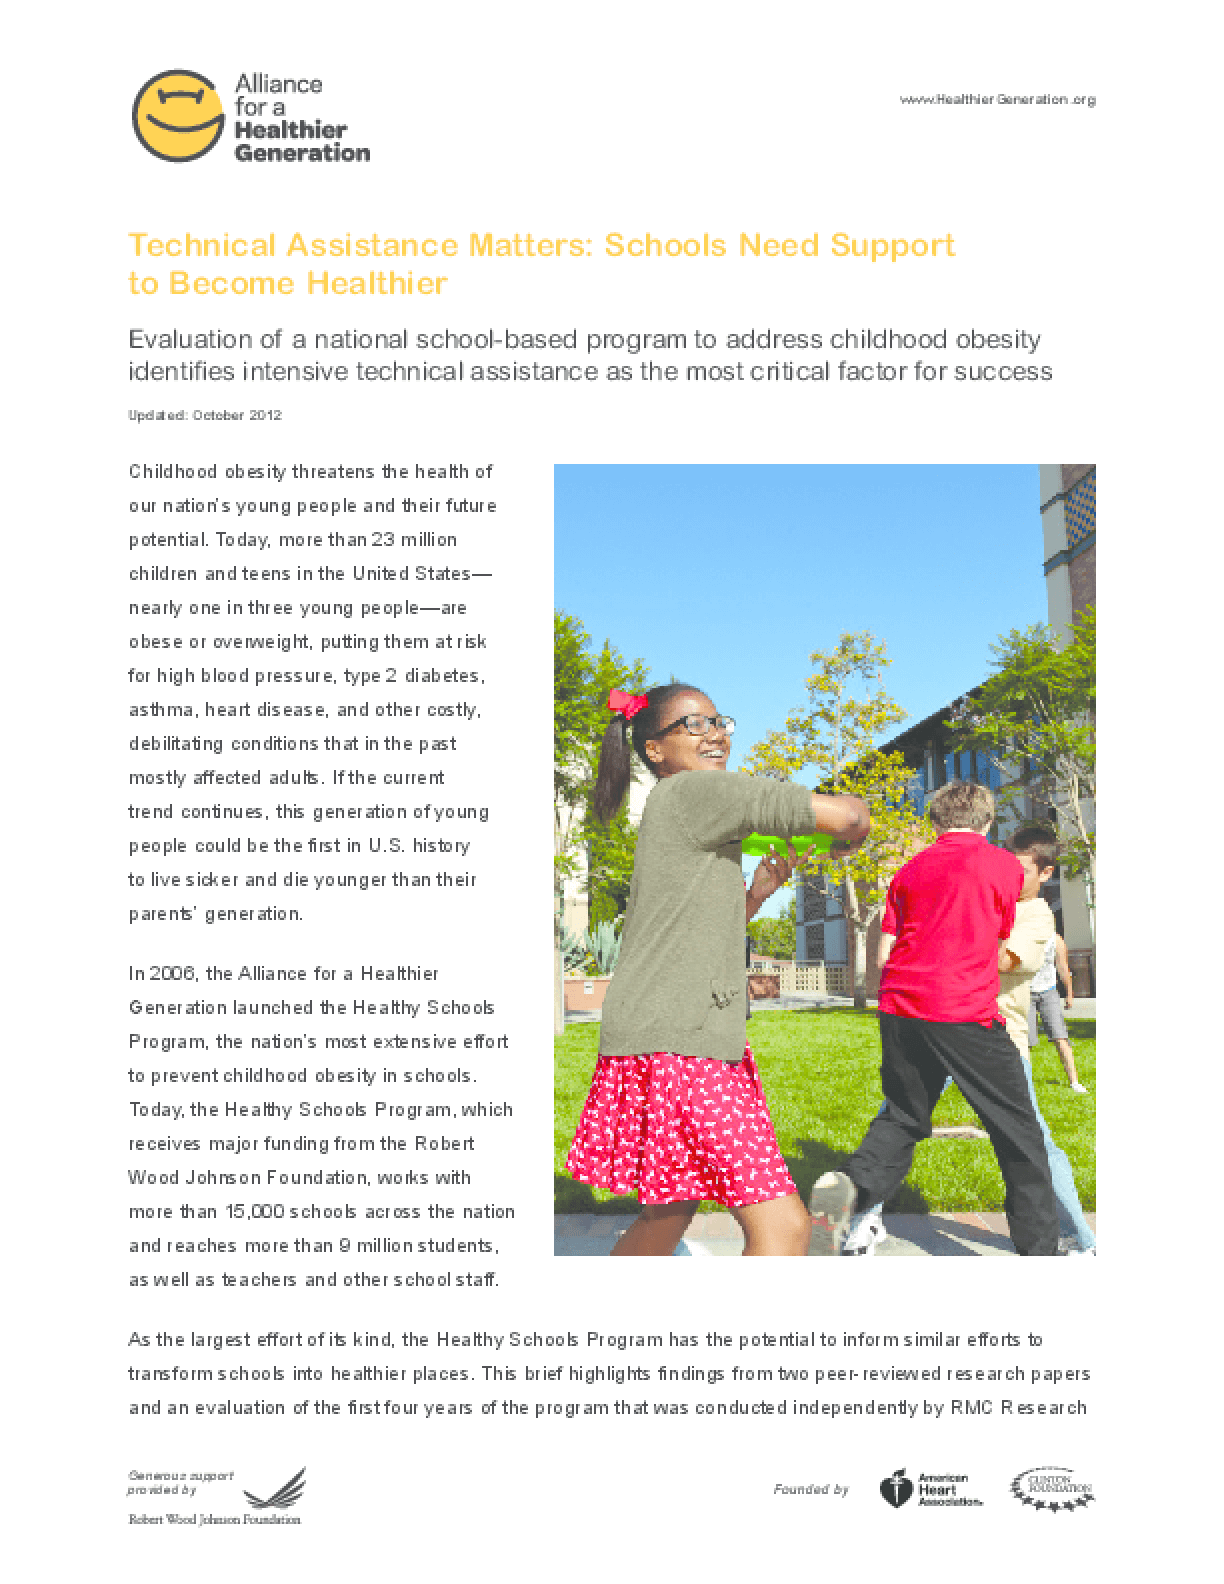 Technical Assistance Matters: Schools Need Support to Become Healthier